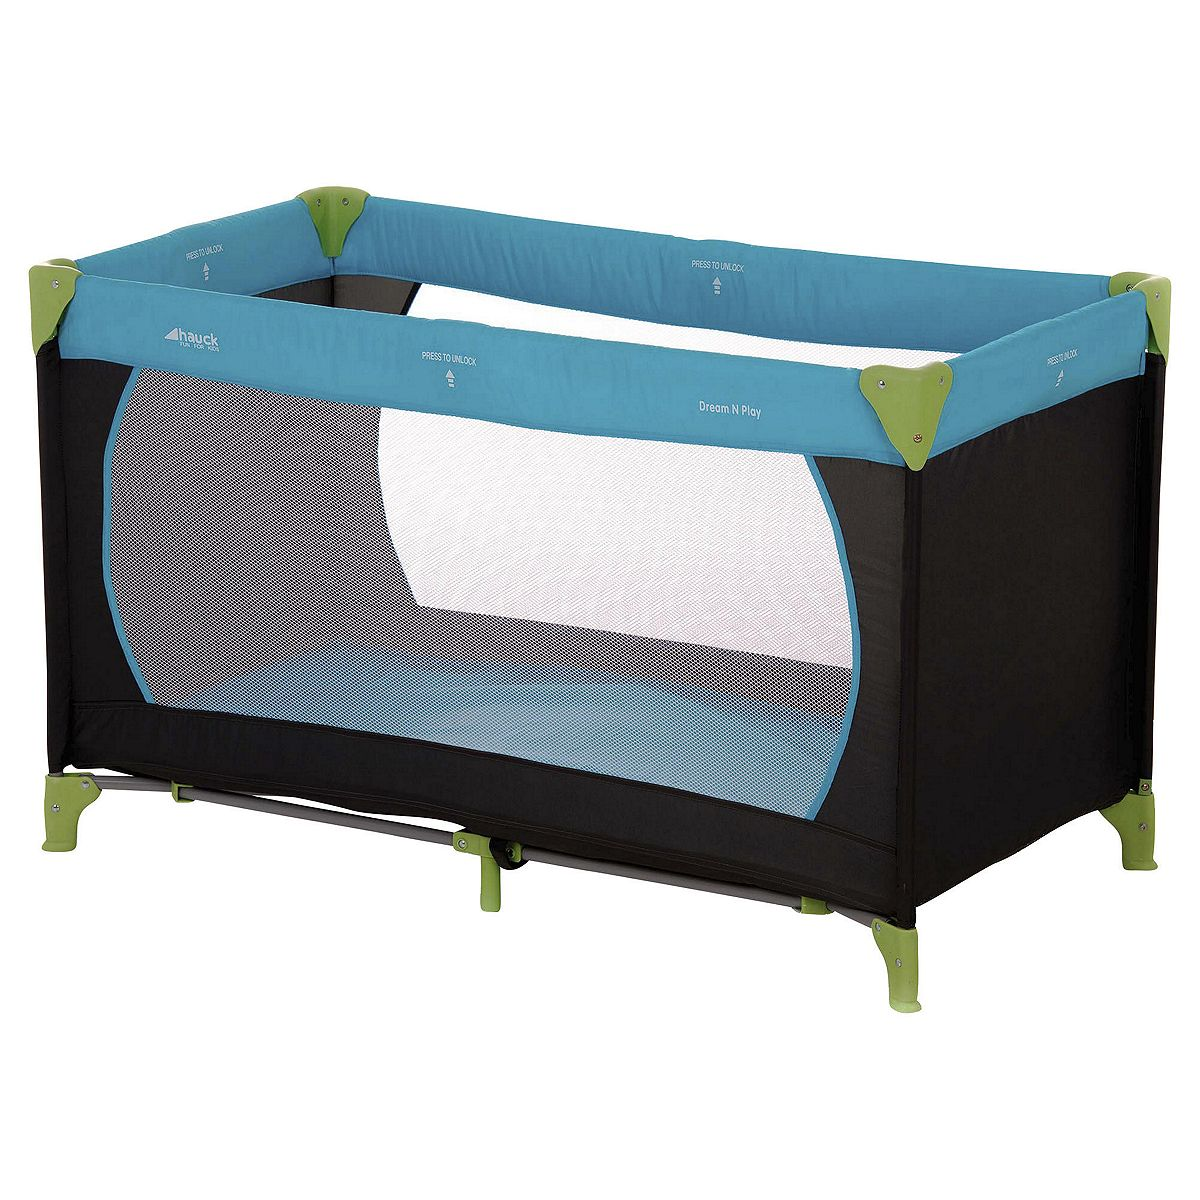 Travel Cot Mattress Tesco: Hauck Dream N Play Travel Cot Water Blue With 2 Mesh Sides